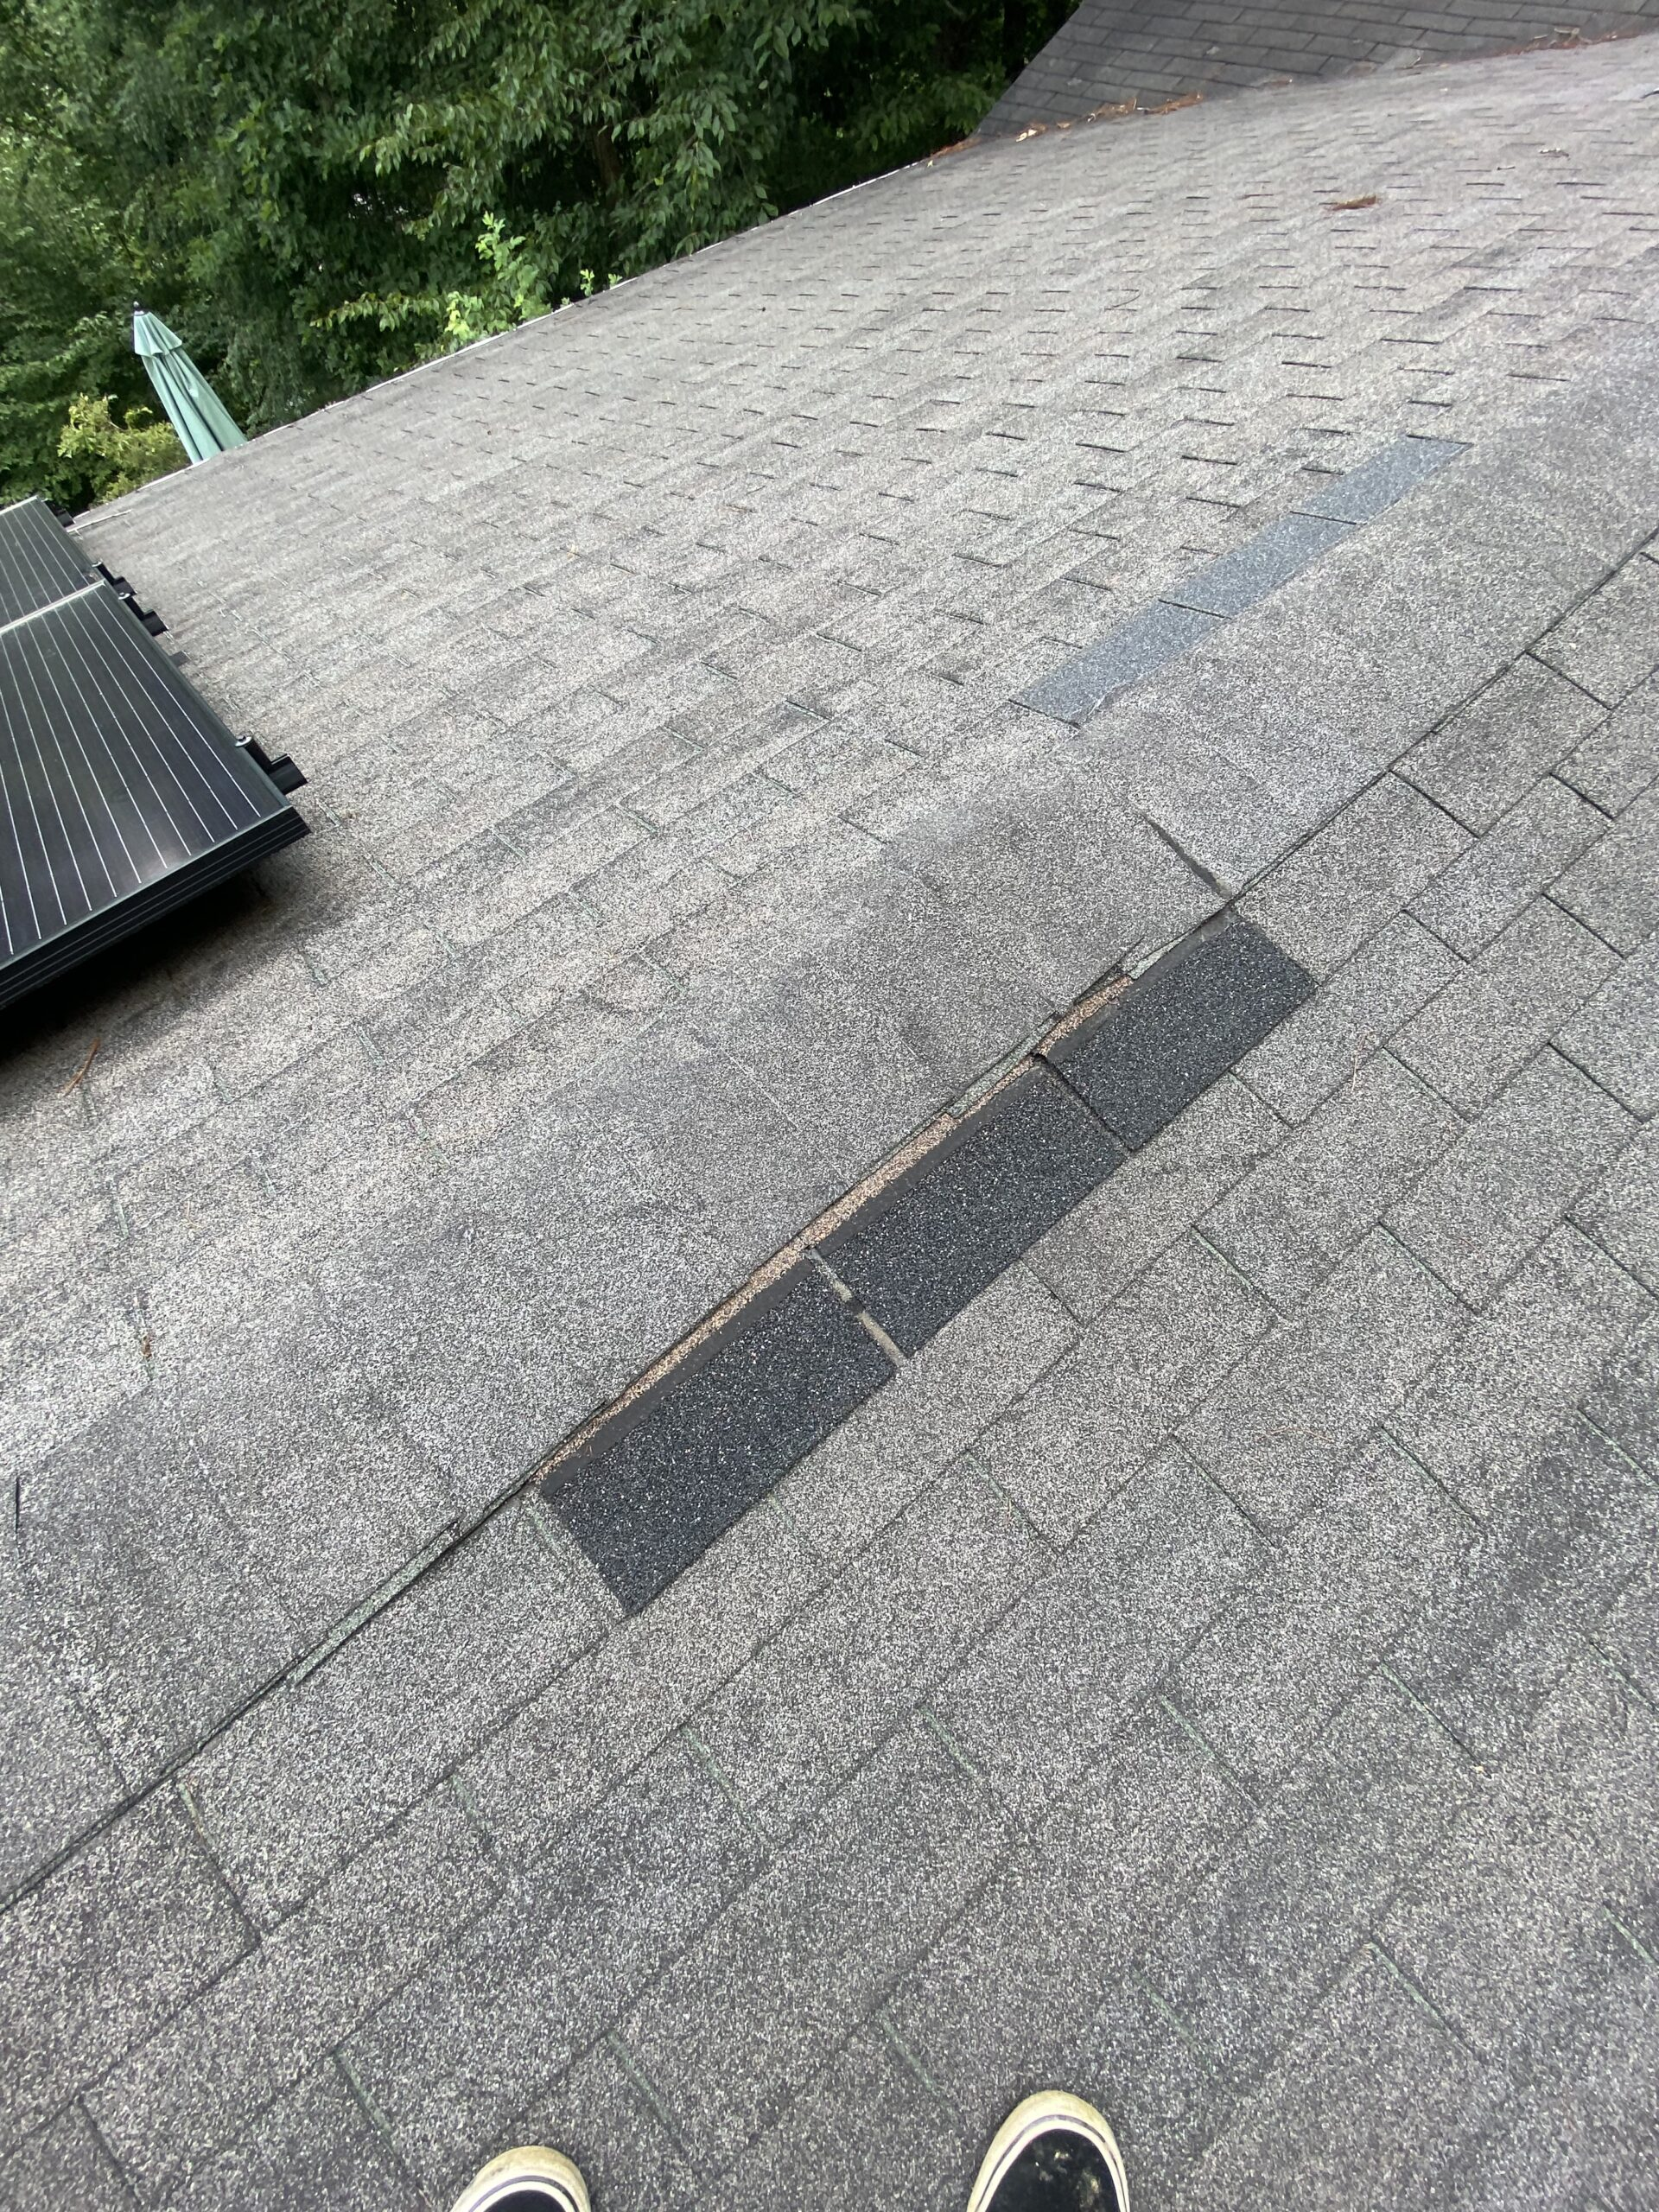 This is a picture of an attempted repair at a ridge cap